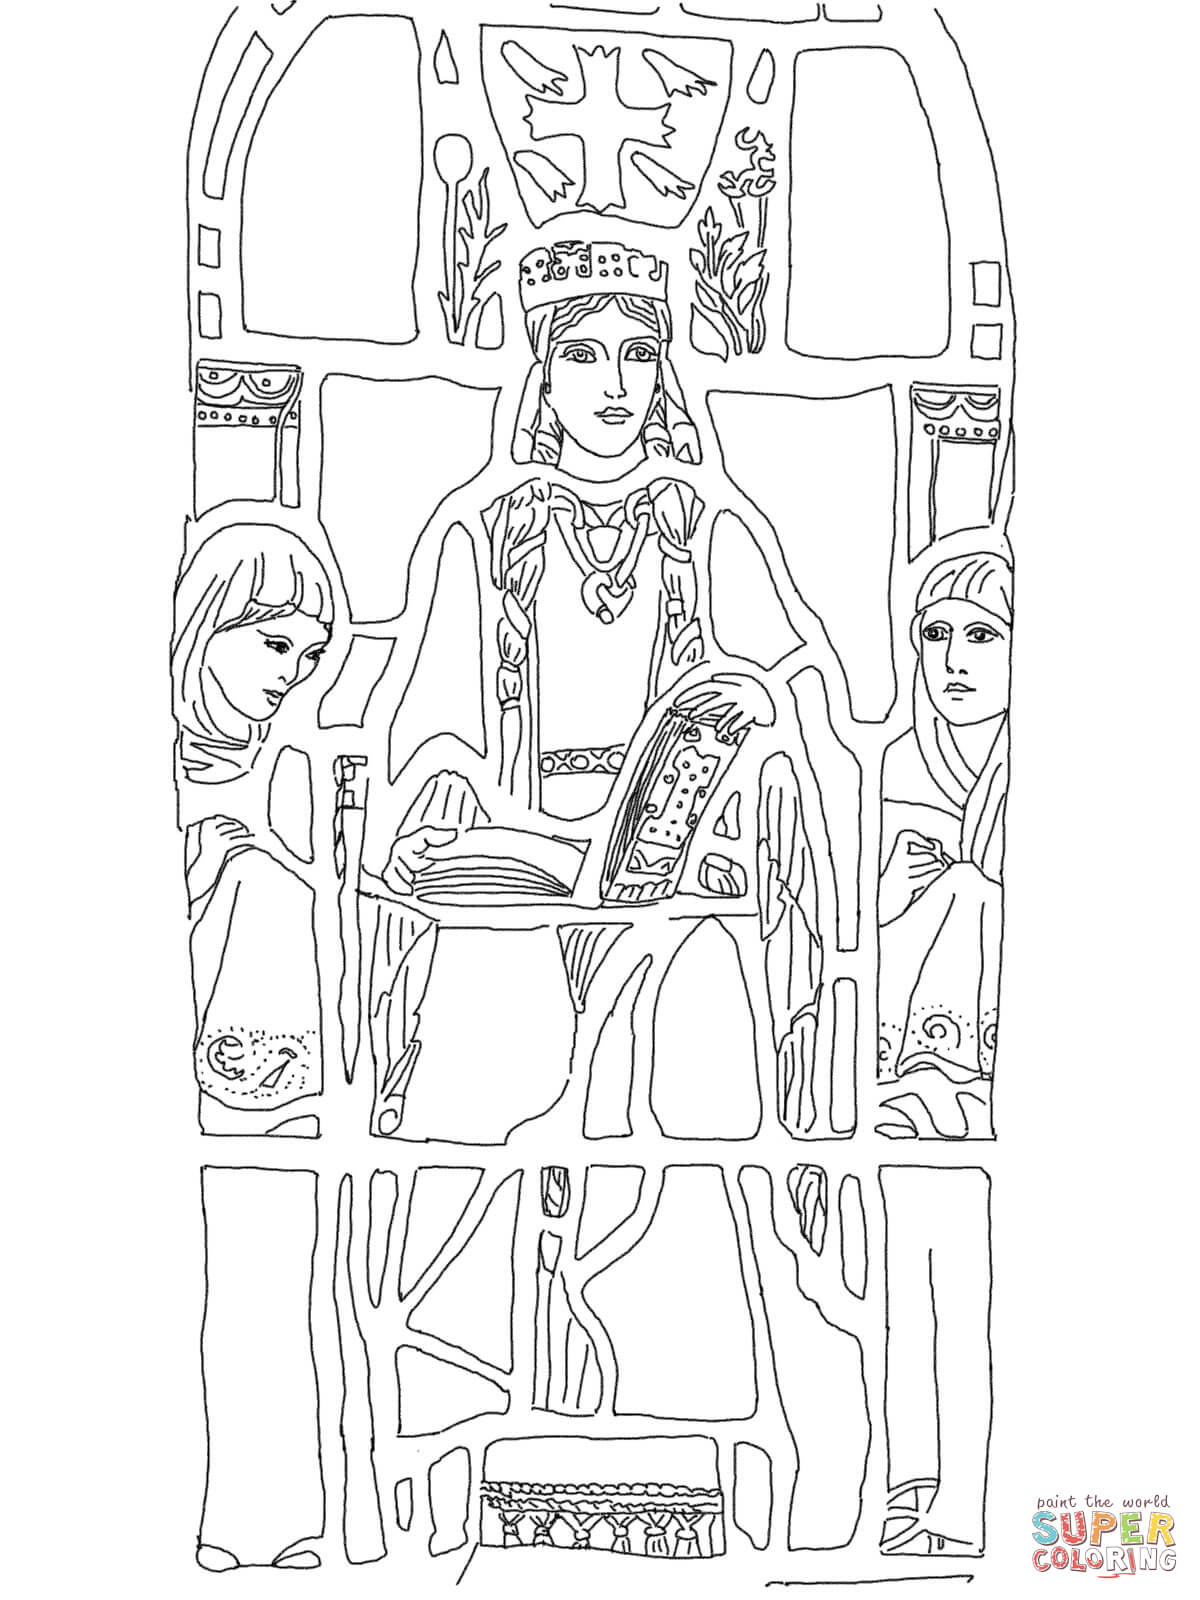 scottish colouring pages kilt colouring page scottish colouring pages for kids colouring scottish pages